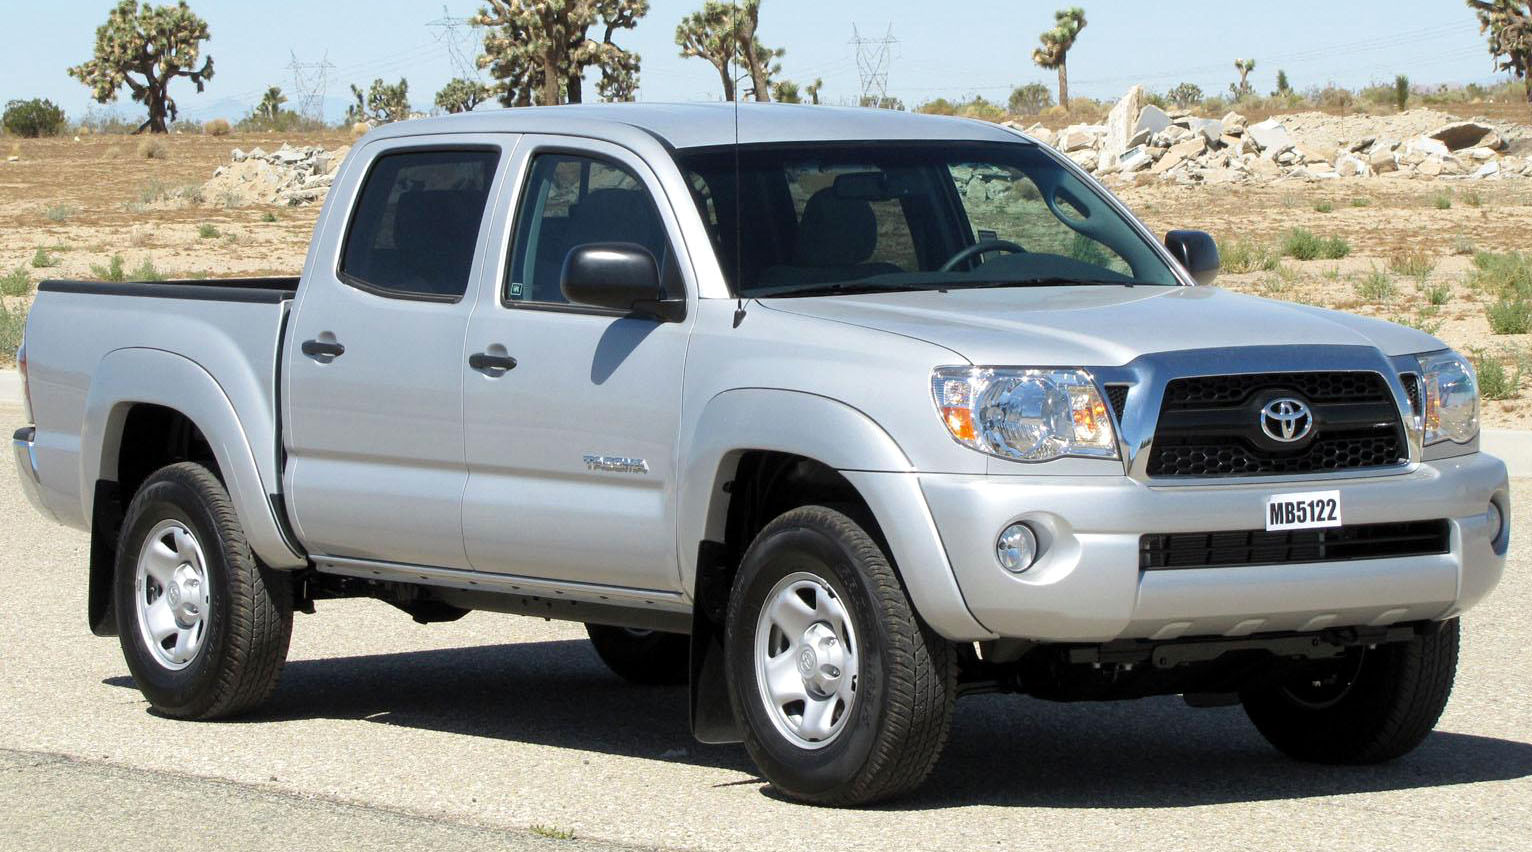 2010 Tacoma Access Cab Wiring Diagram Diagrams Scematic 2009 Toyota Tractor Construction Plant Wiki Fandom Powered 4wd